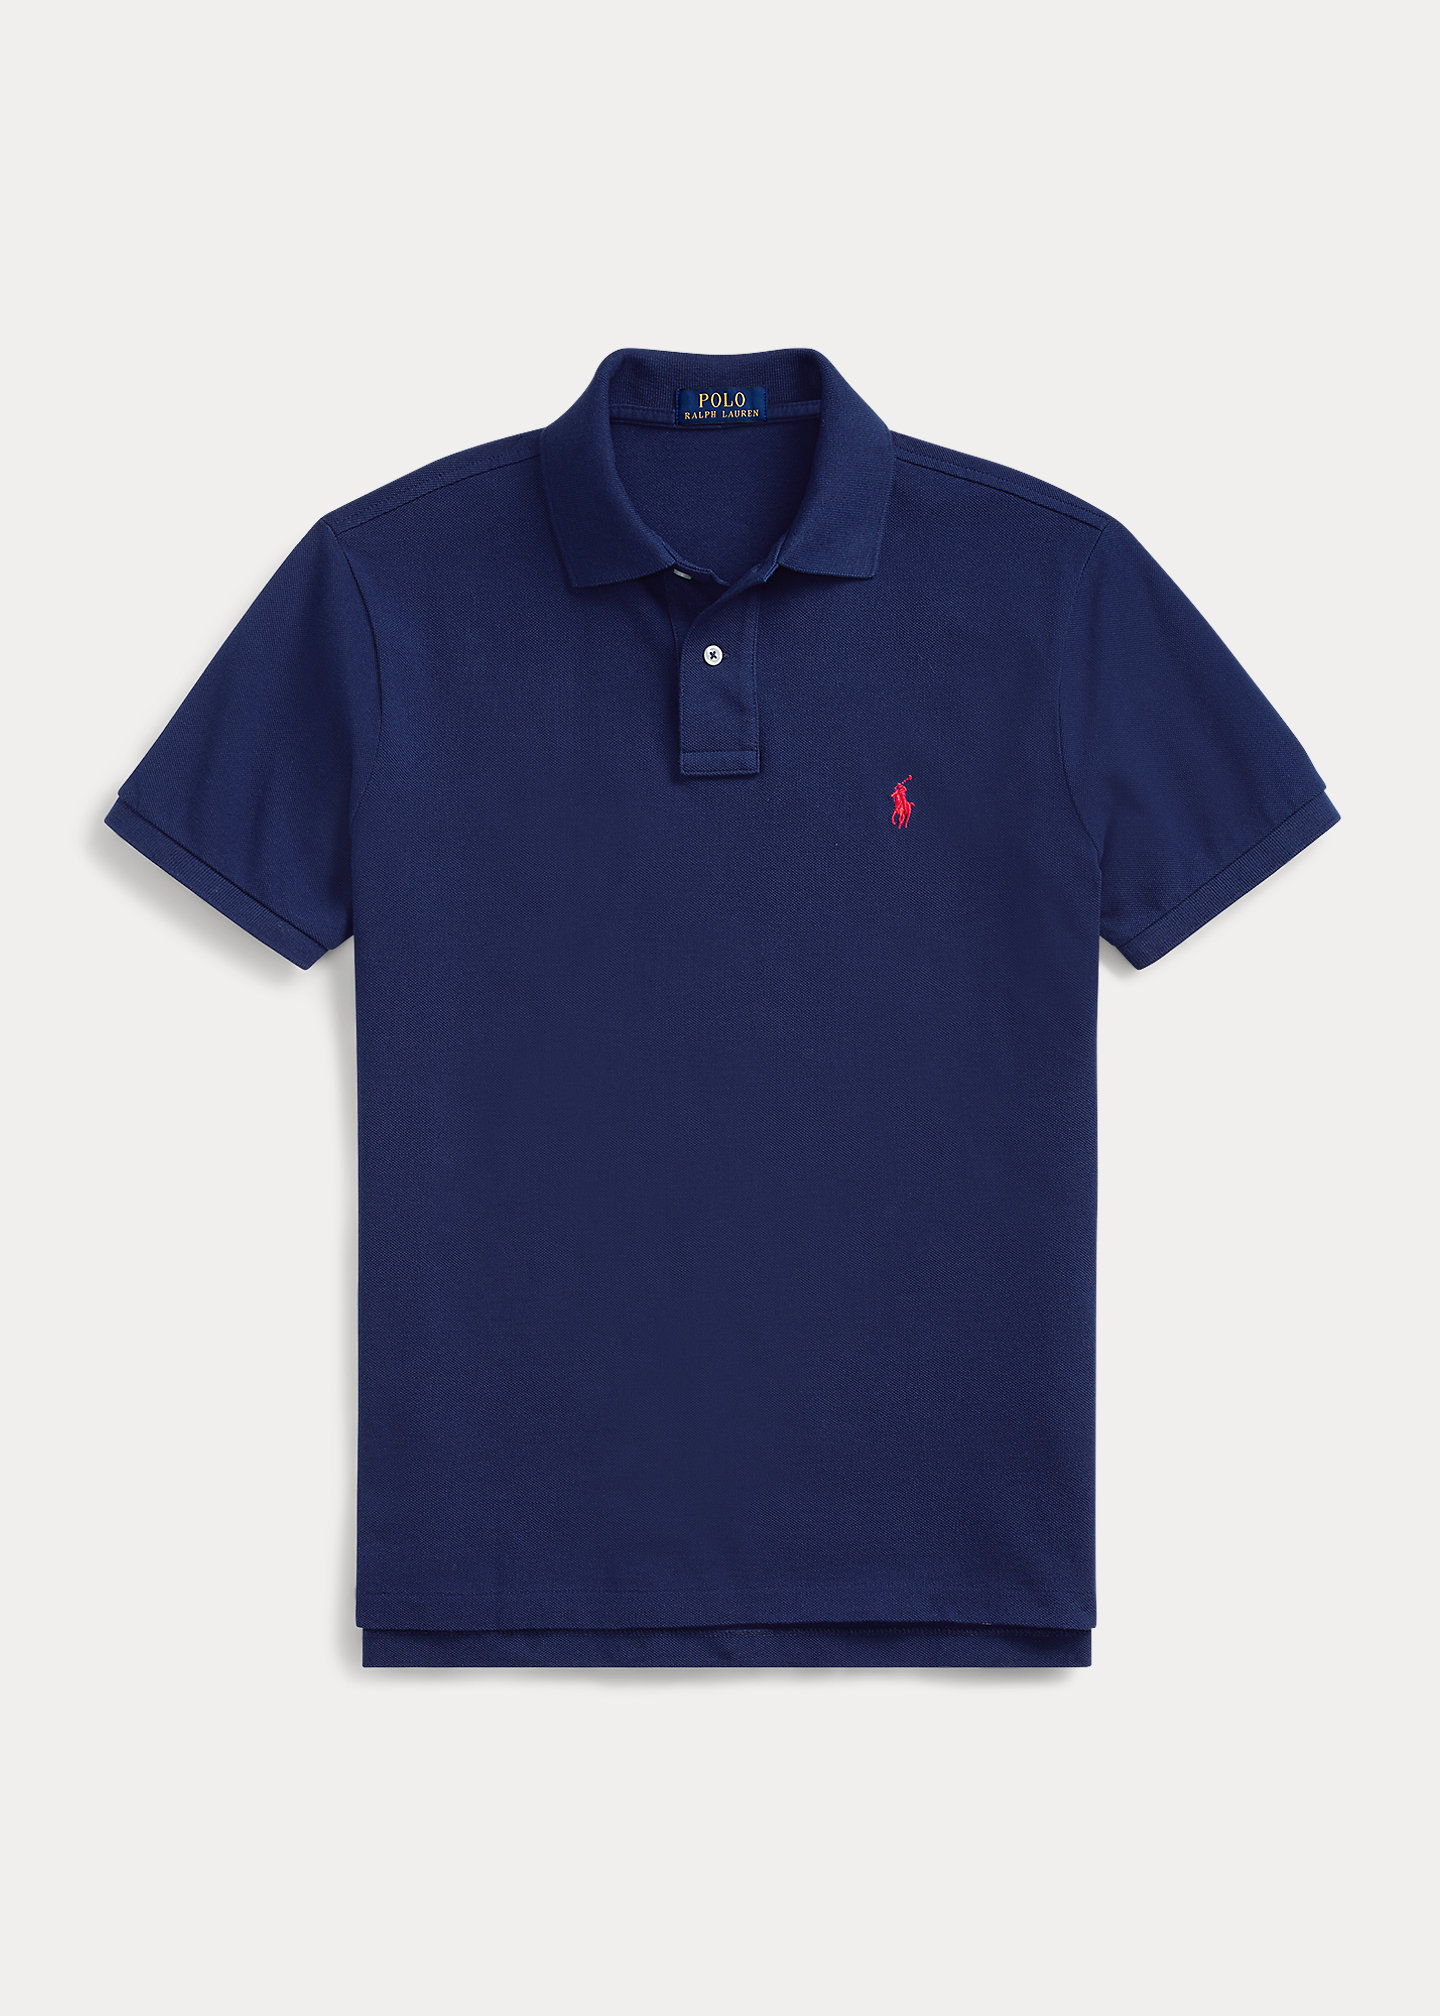 Polo Ralph Lauren The Iconic Mesh Polo Shirt - All Fits 2